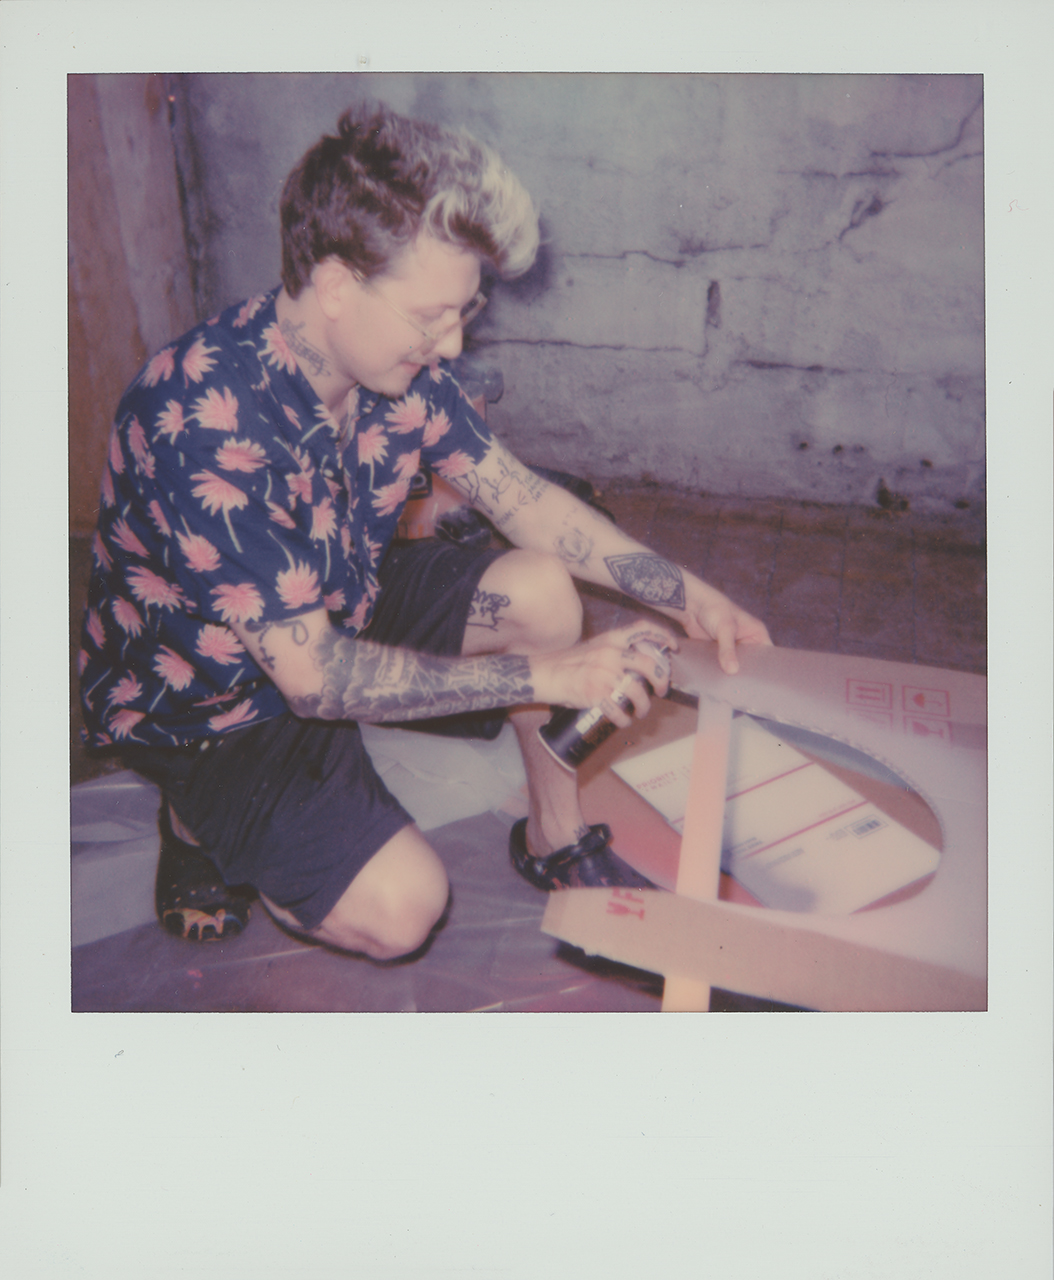 Brandon Sines on Polaroid 600 film